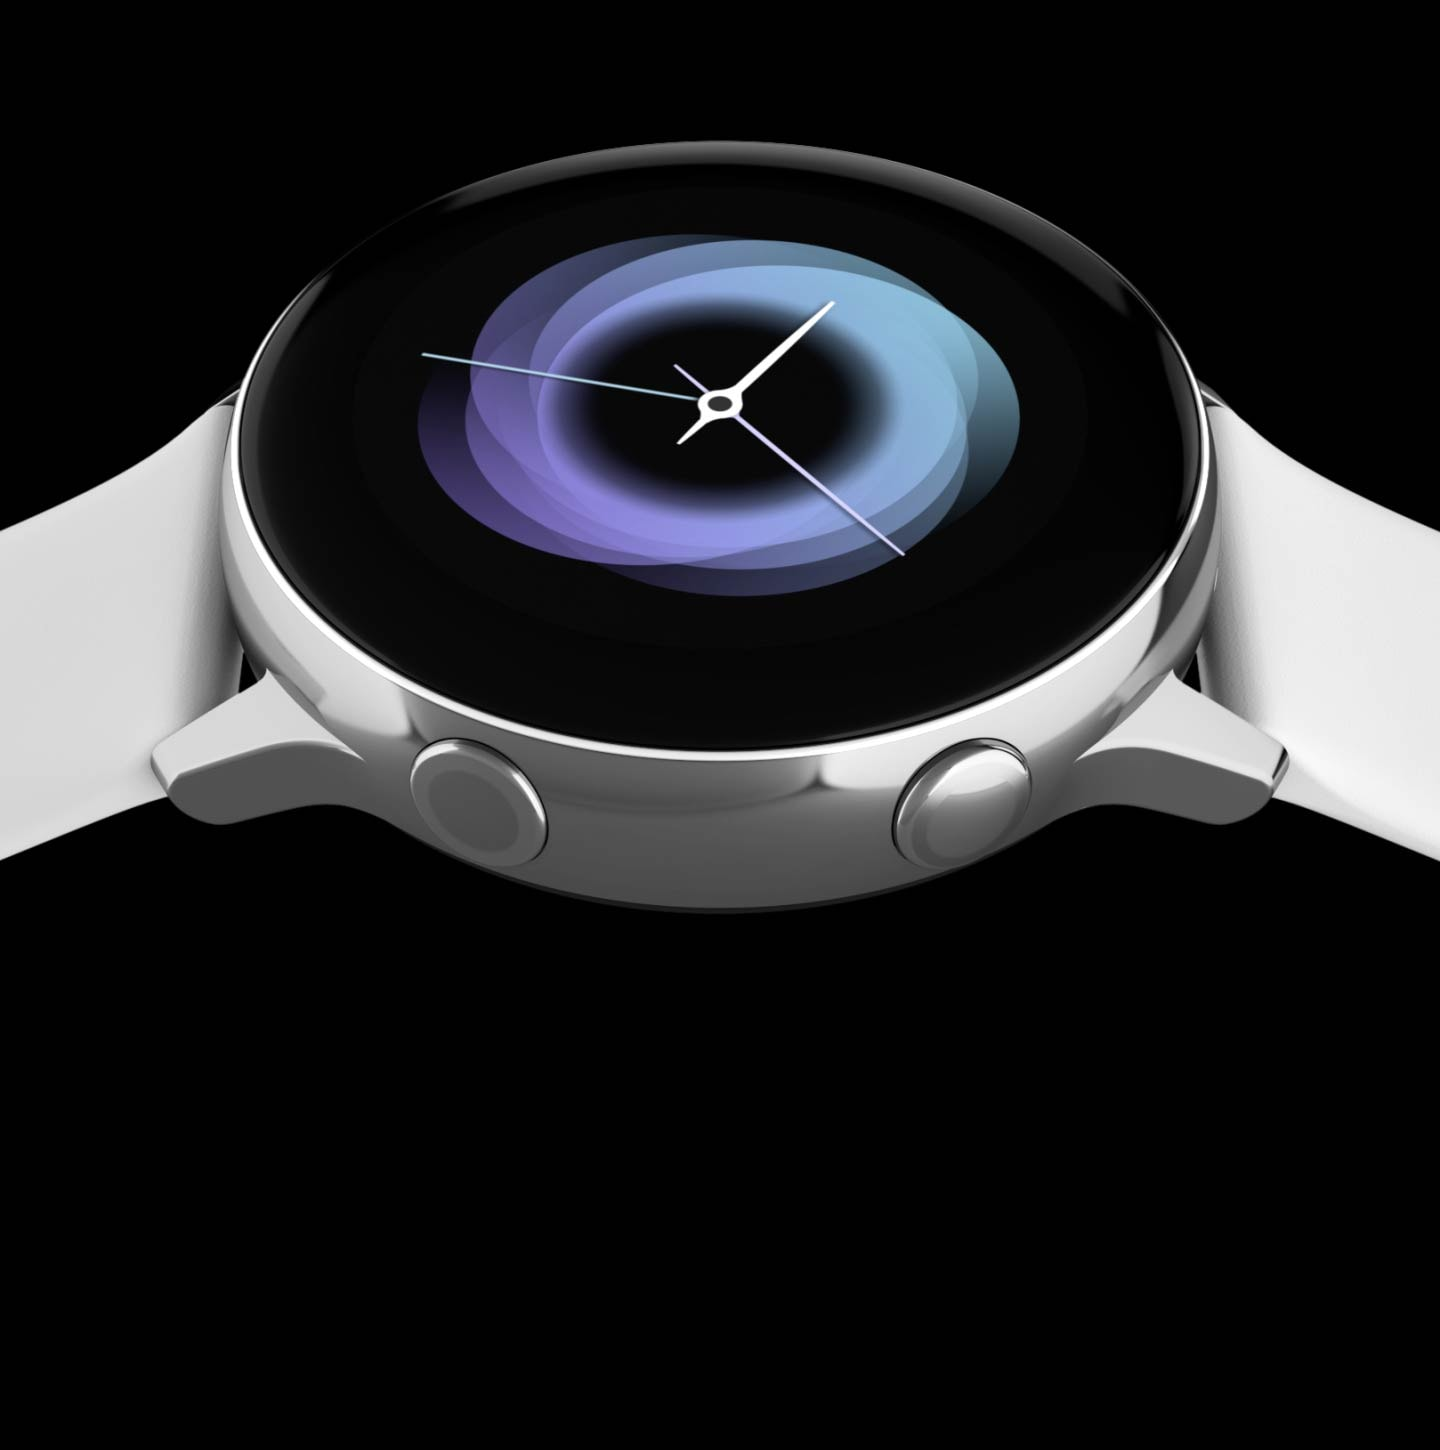 galaxy watch active front overview rotate detail